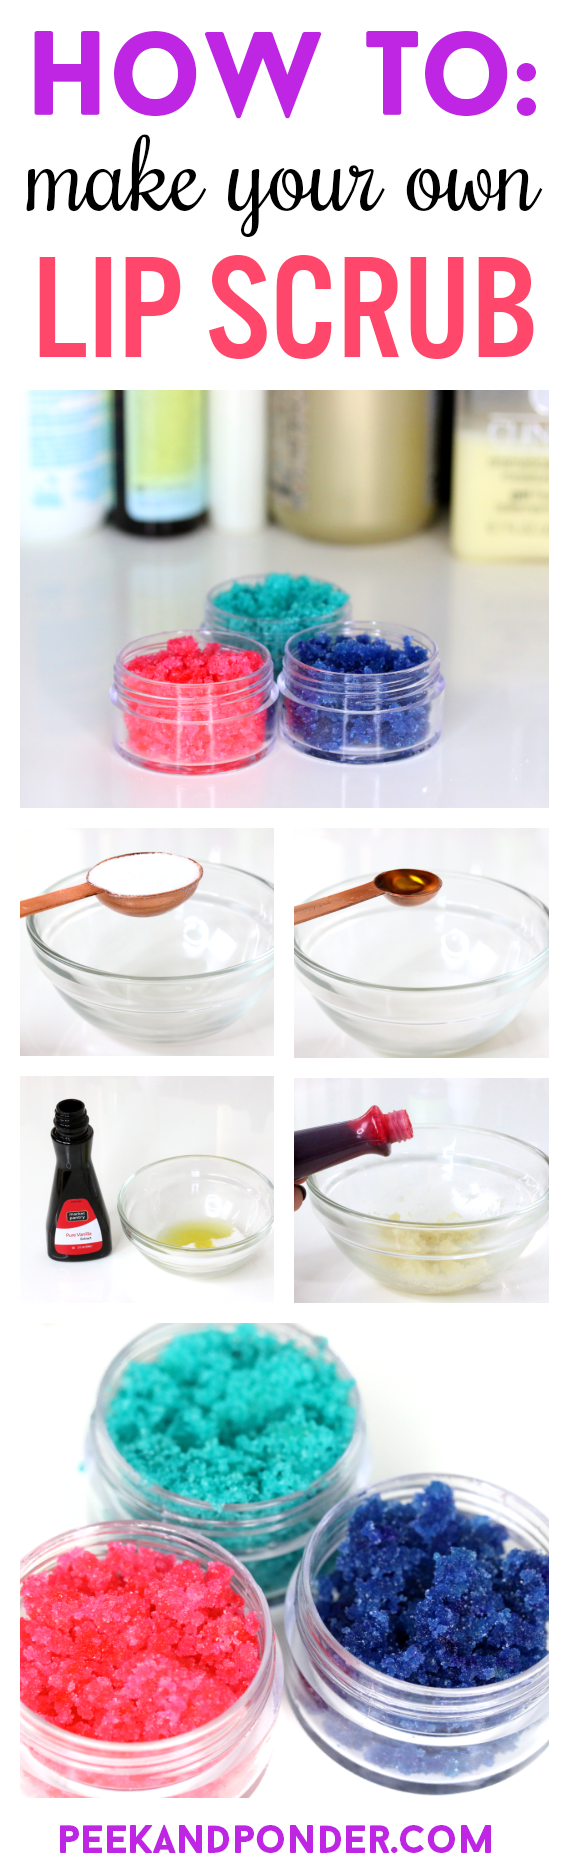 DIY lip scrub! A recipe, easy step-by-step instructions, and video on how to make your own lip scrub with ingredients from your kitchen!